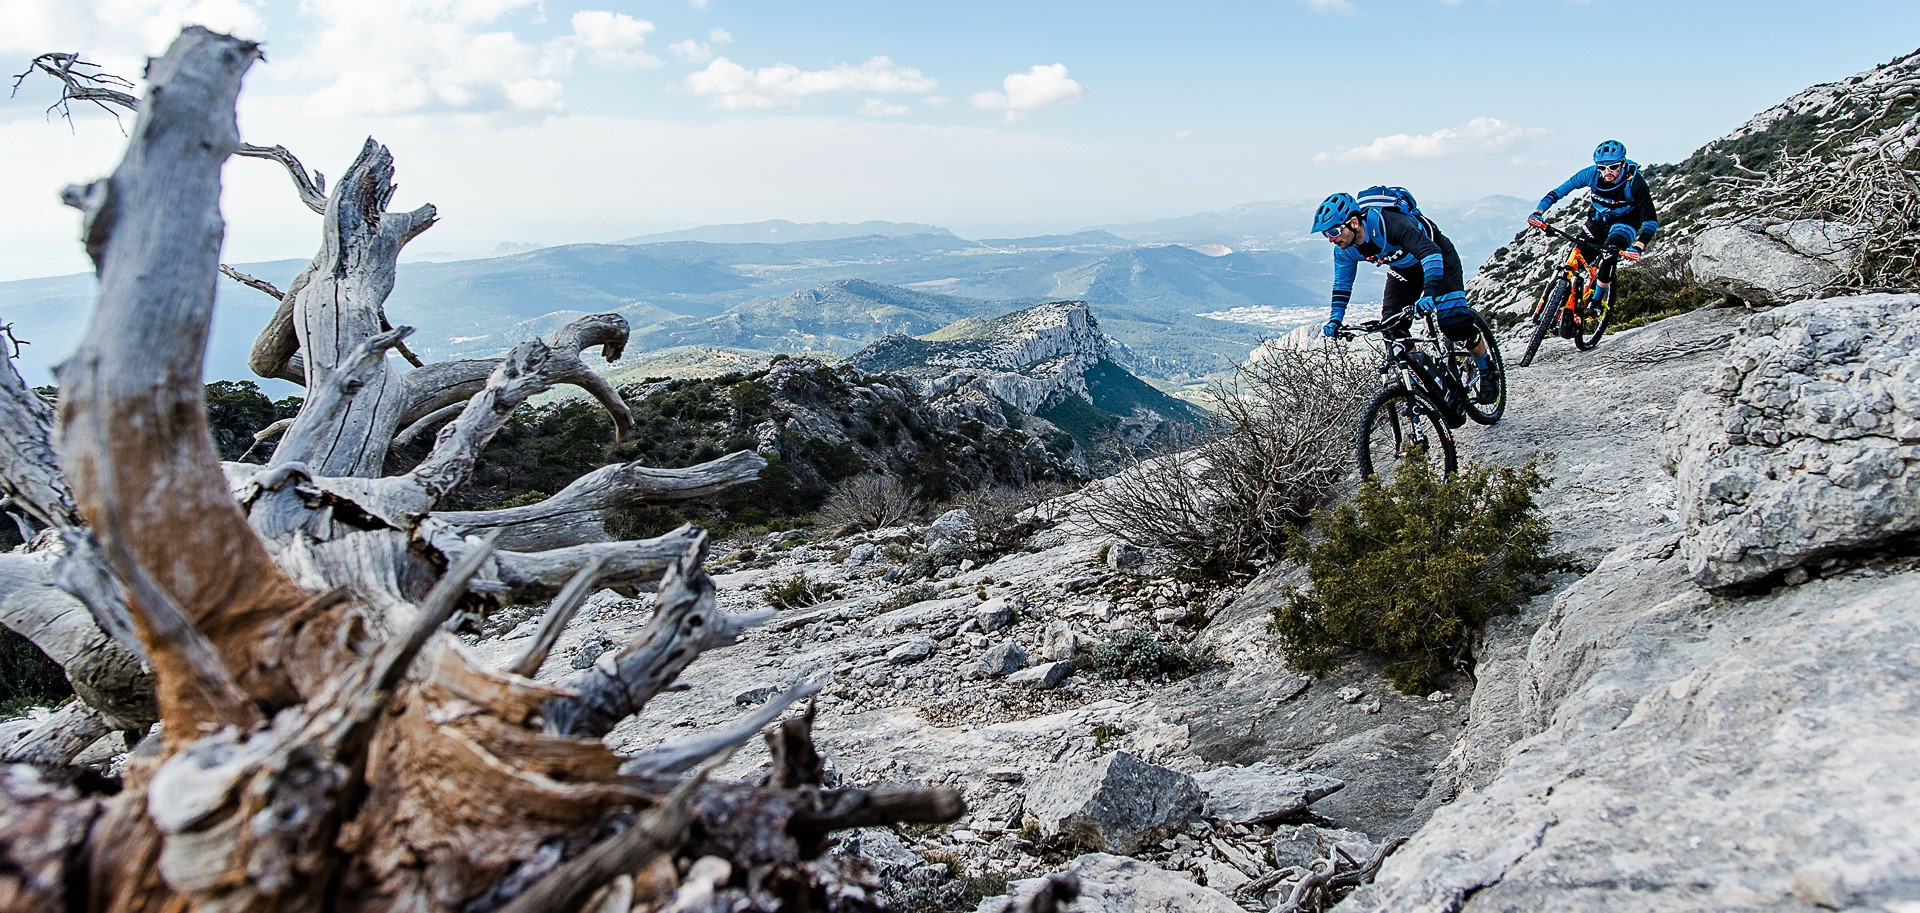 All-Mountai-enduro-vtt-ridevtt-provence-